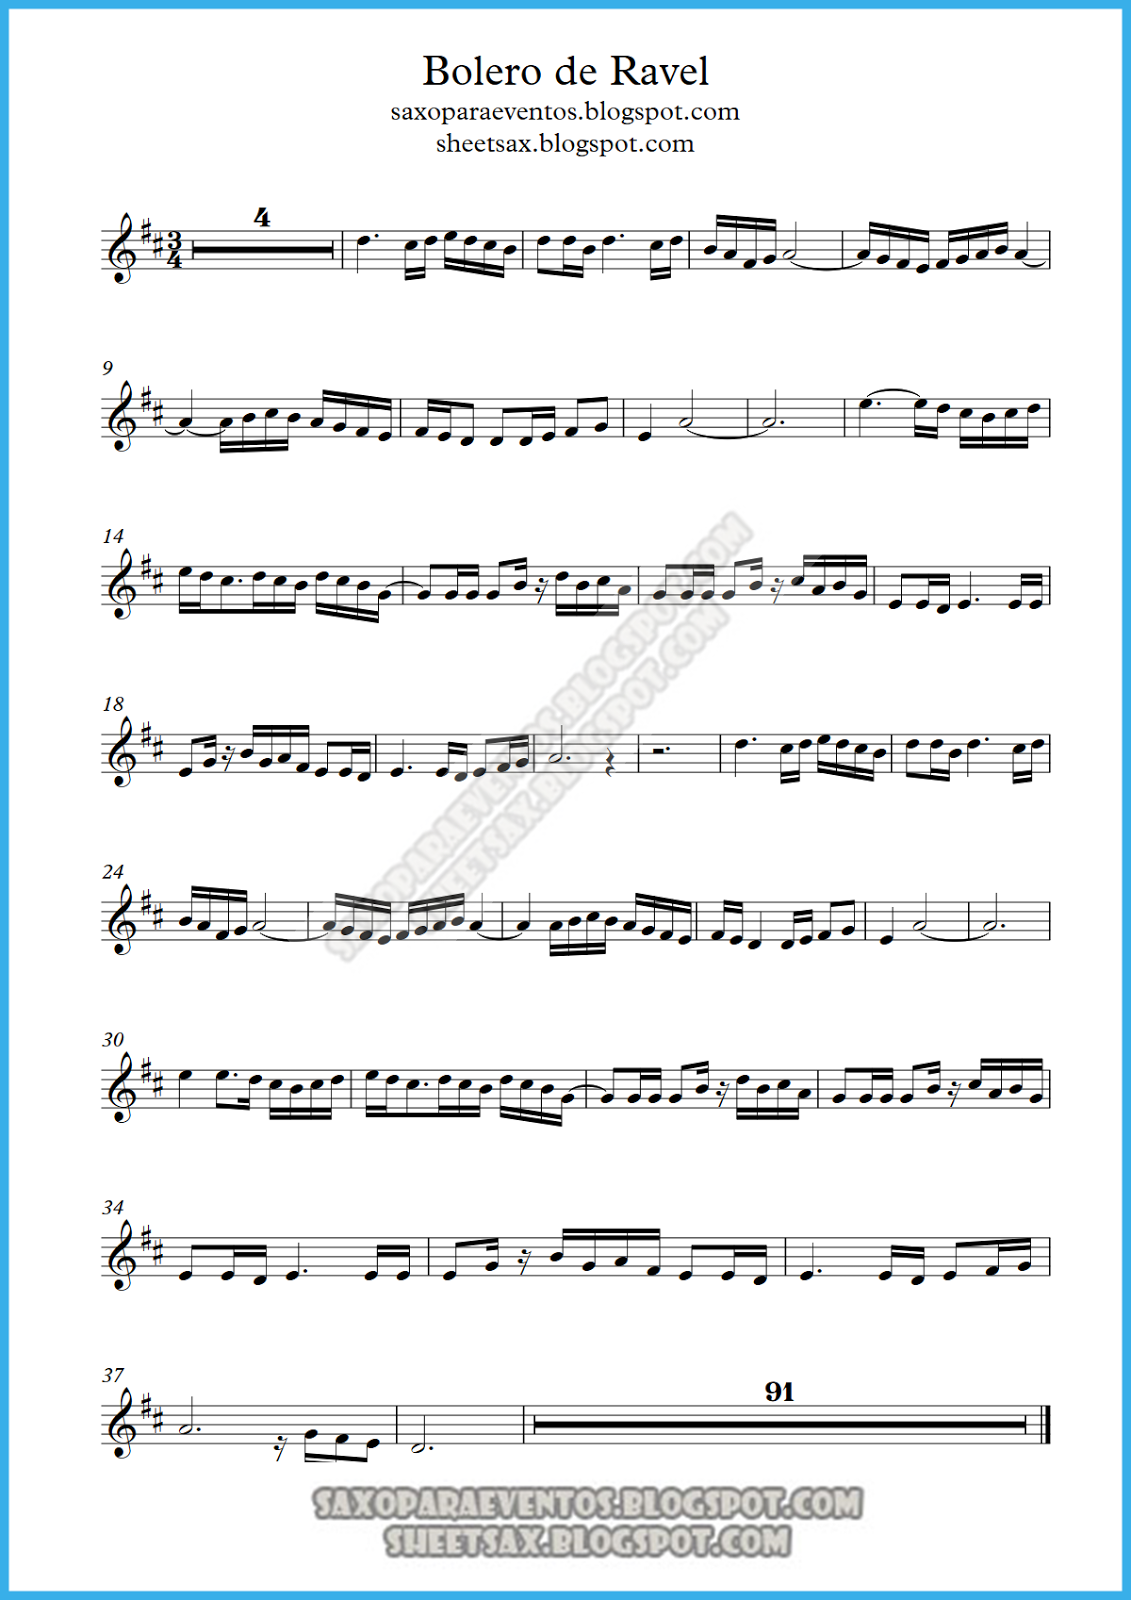 Music Score Of Boléro By Ravel Free Sheet Music For Sax